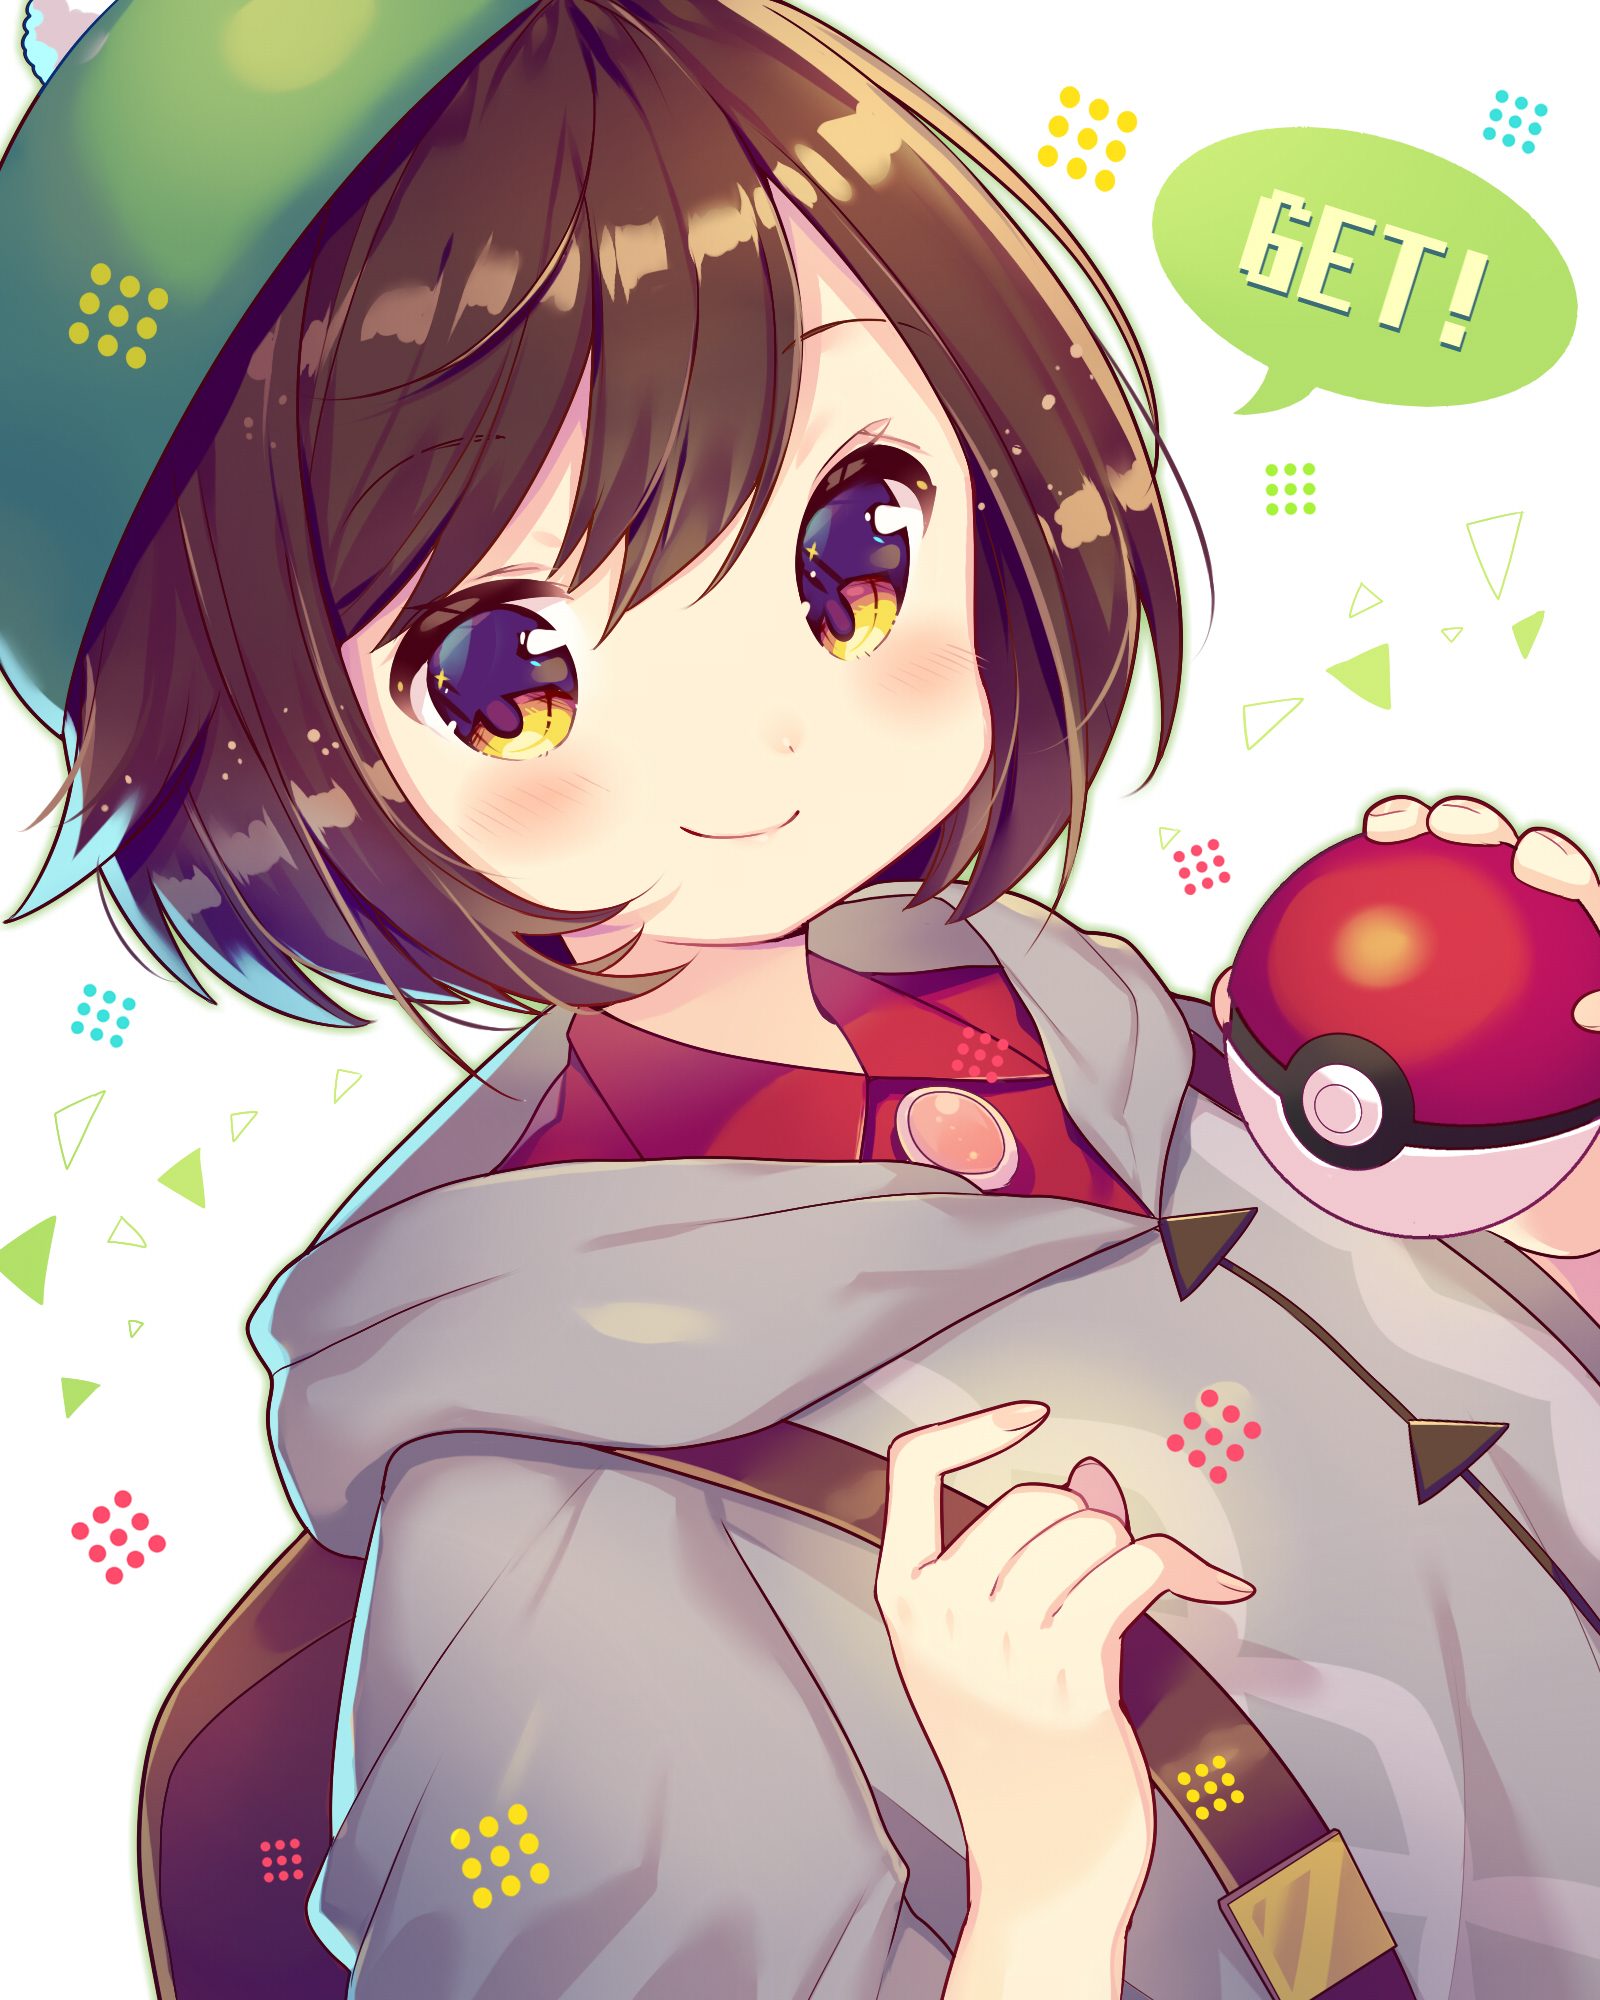 Our New Heroine Pokemon Sword And Shield Awwnime